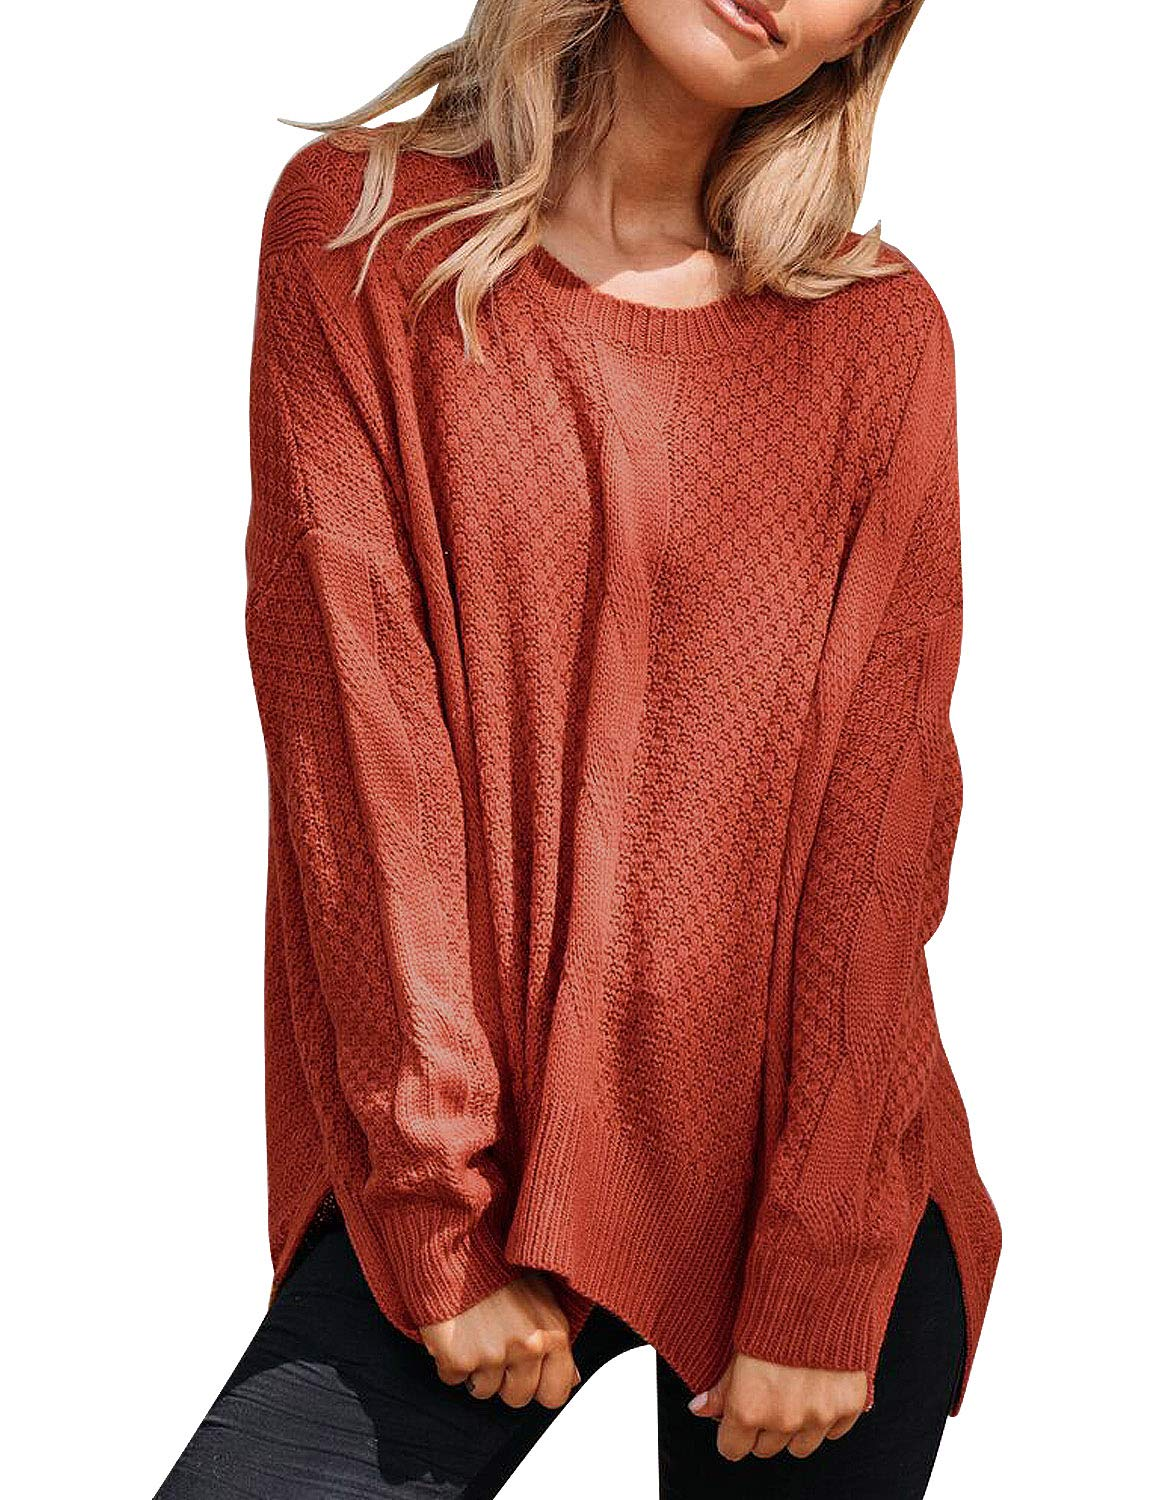 ACKKIA Women Casual Ribbed Cable Knit Sweater Textured Slit Jumper Pullover Tops Rust Red Small (Fits US 4-US 6)